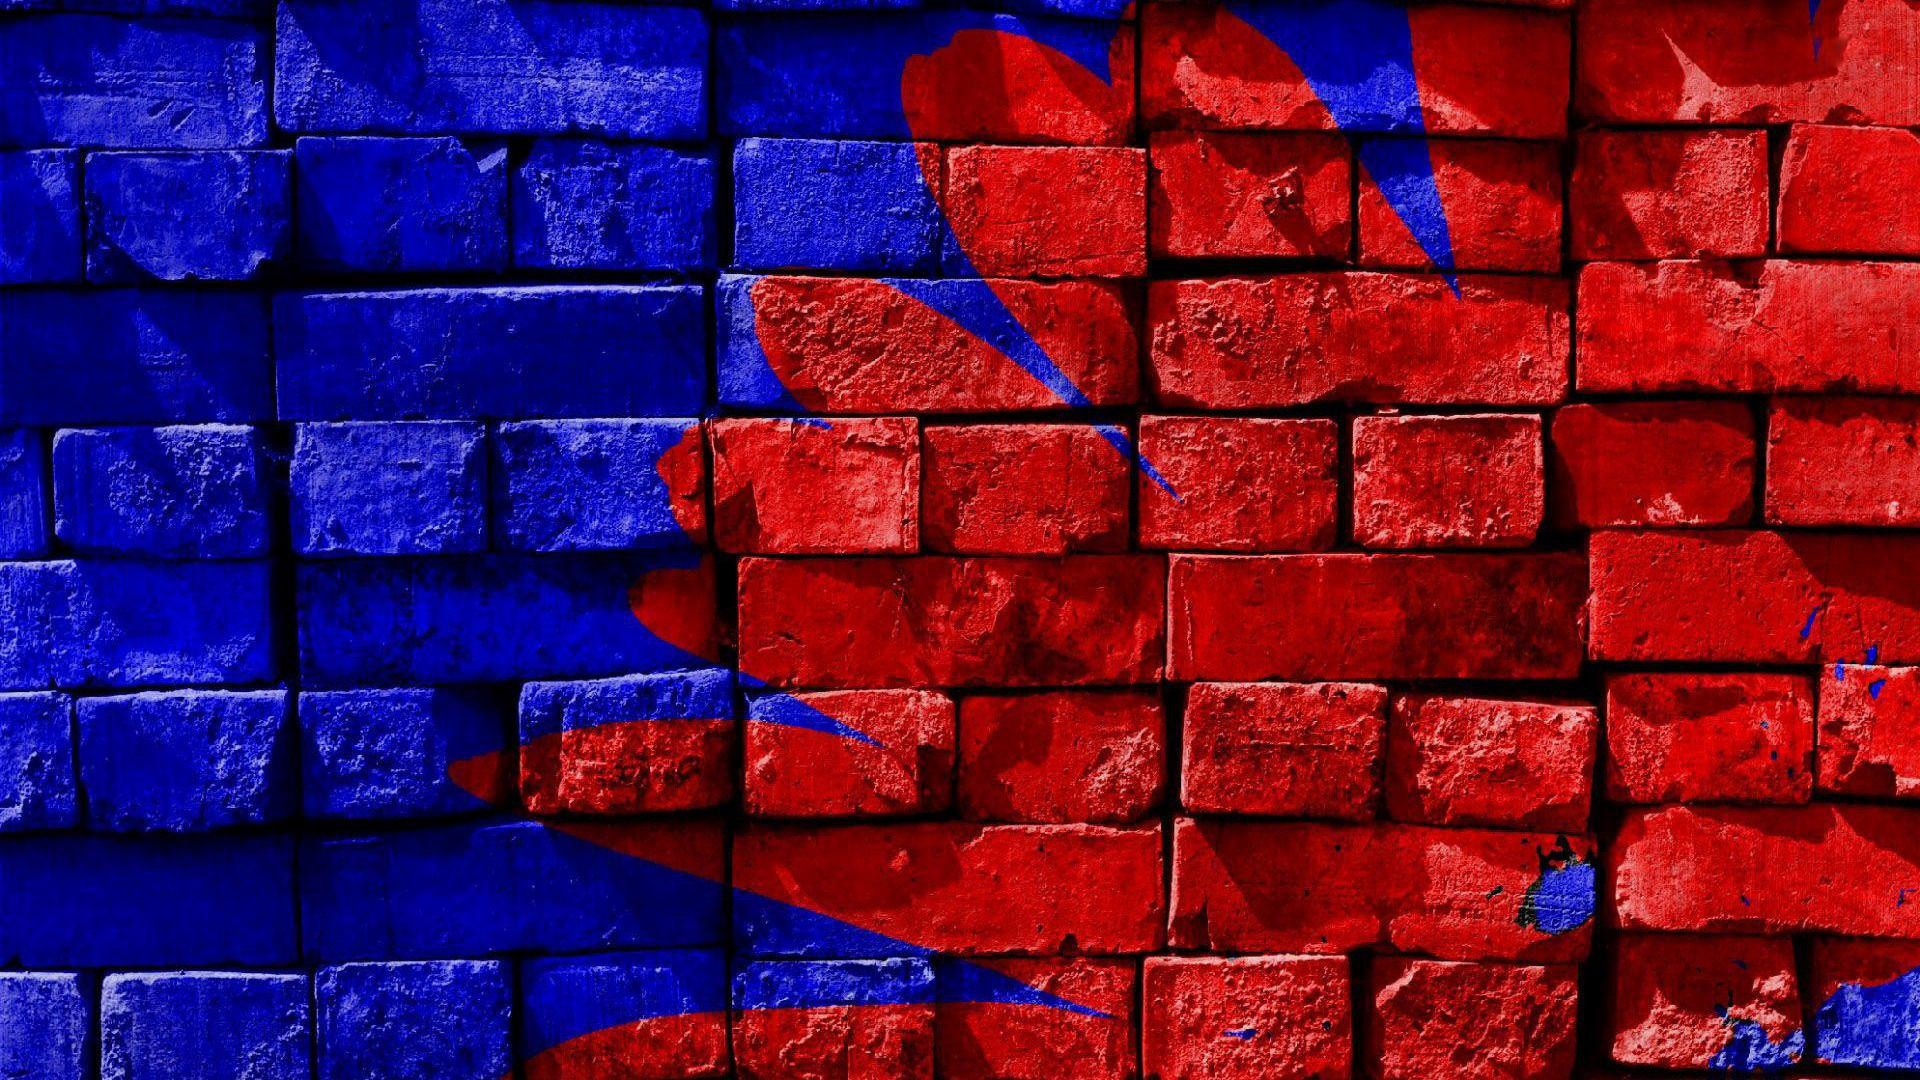 wallpaper.wiki-Blue-And-Red-Backgrounds-Desktop-PIC-